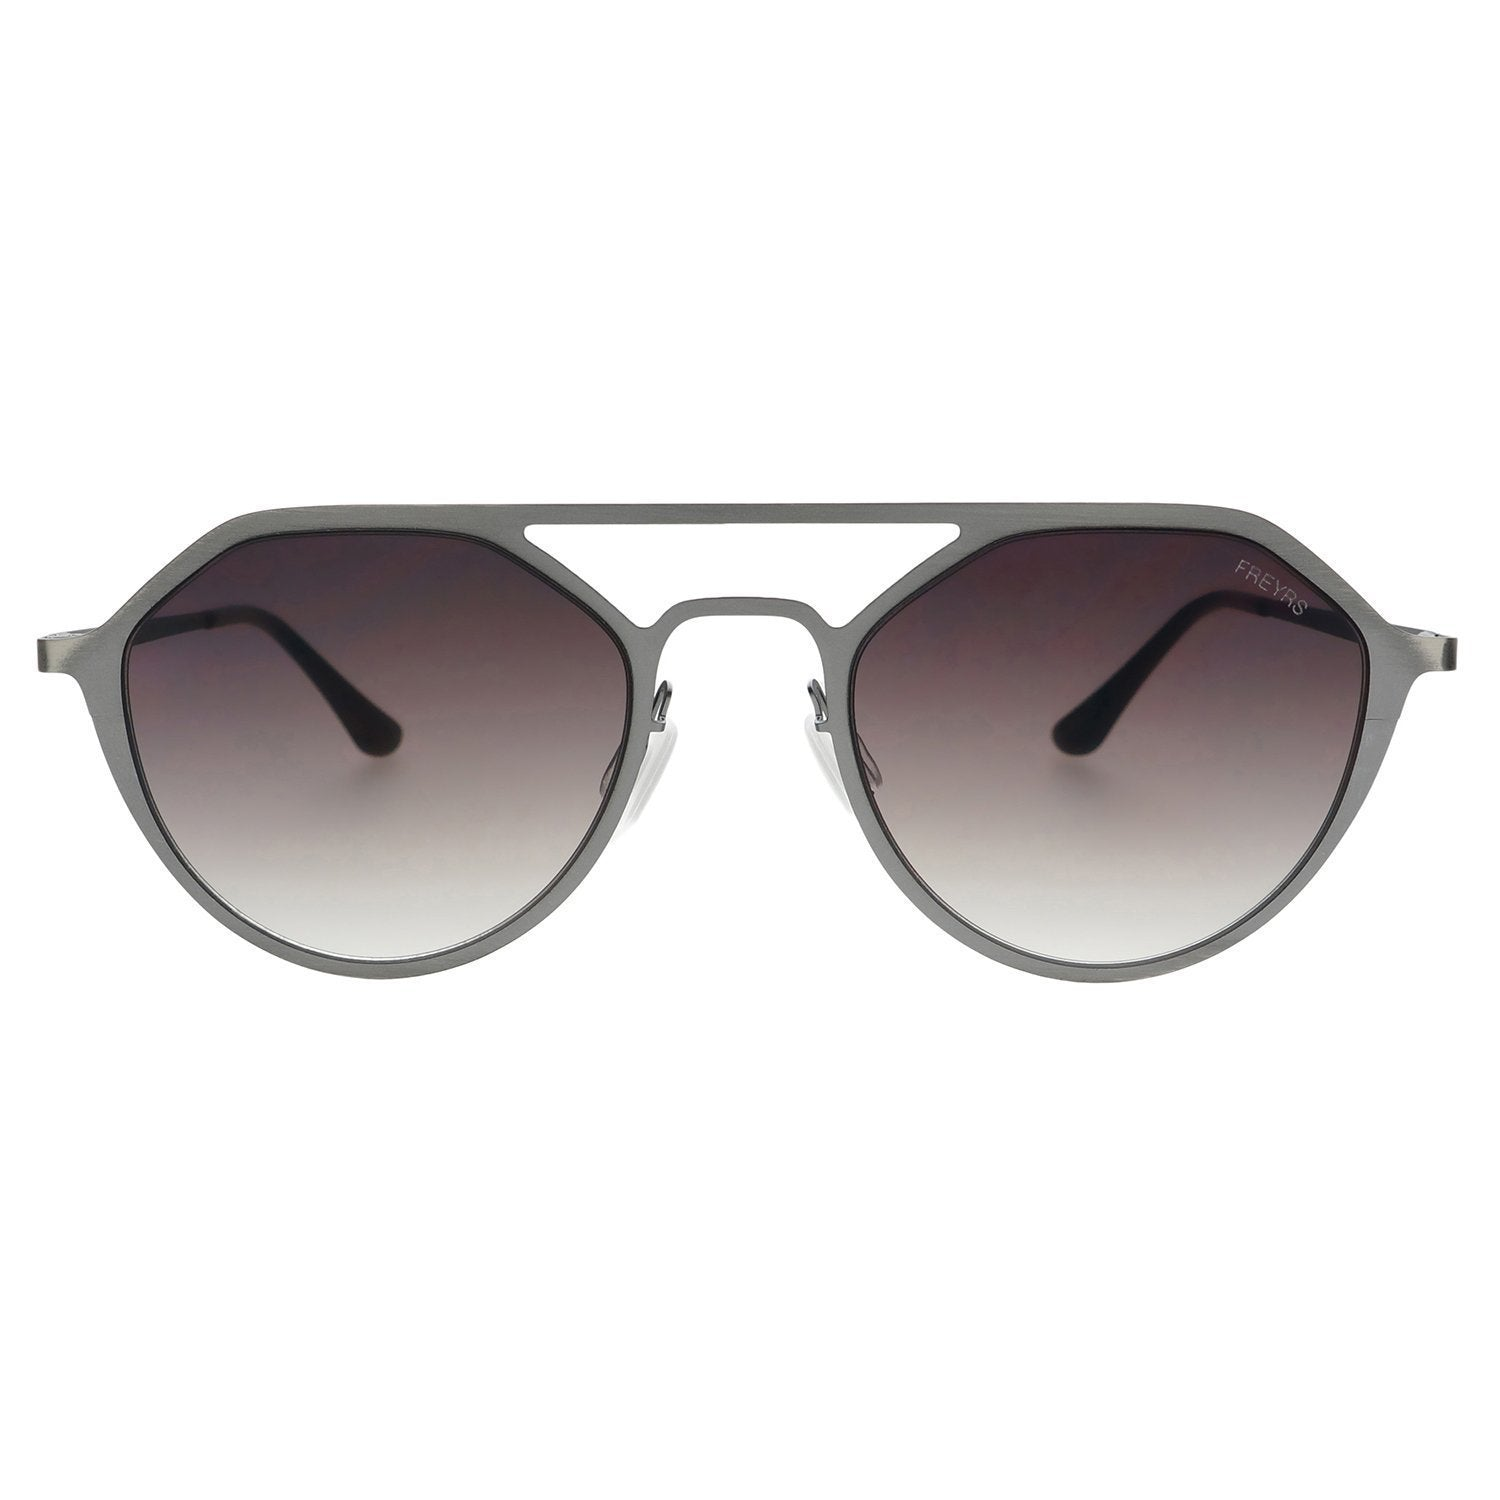 Hayden Sunglasses - Mulberry & Me